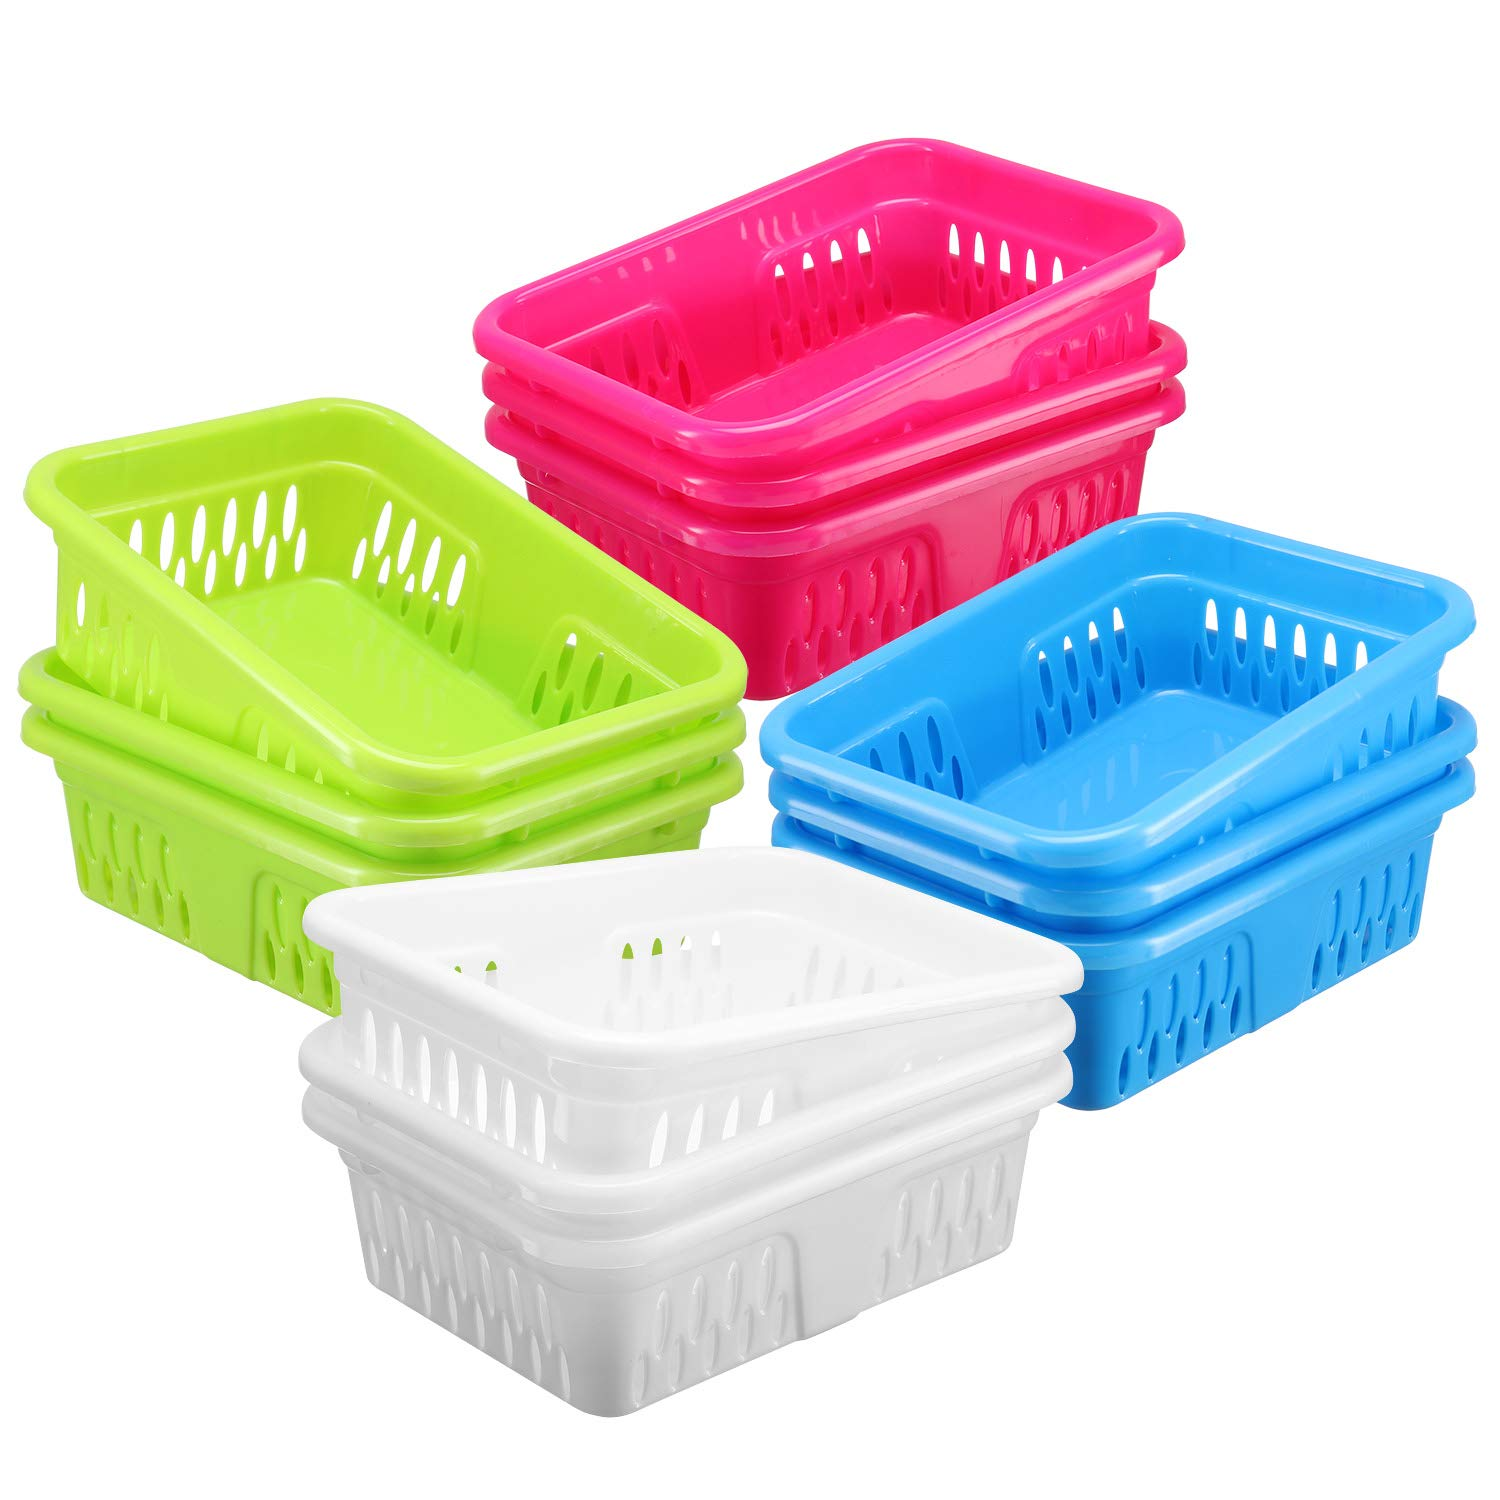 Bright Plastic Organizer Bins - 12 Pack -Small Colorful Storage Trays, Modular Baskets Holders for Classroom, Drawers, Shelves, Desktop, Closet, Playroom, Office, and More - 4 Colors - BPA Free by DilaBee